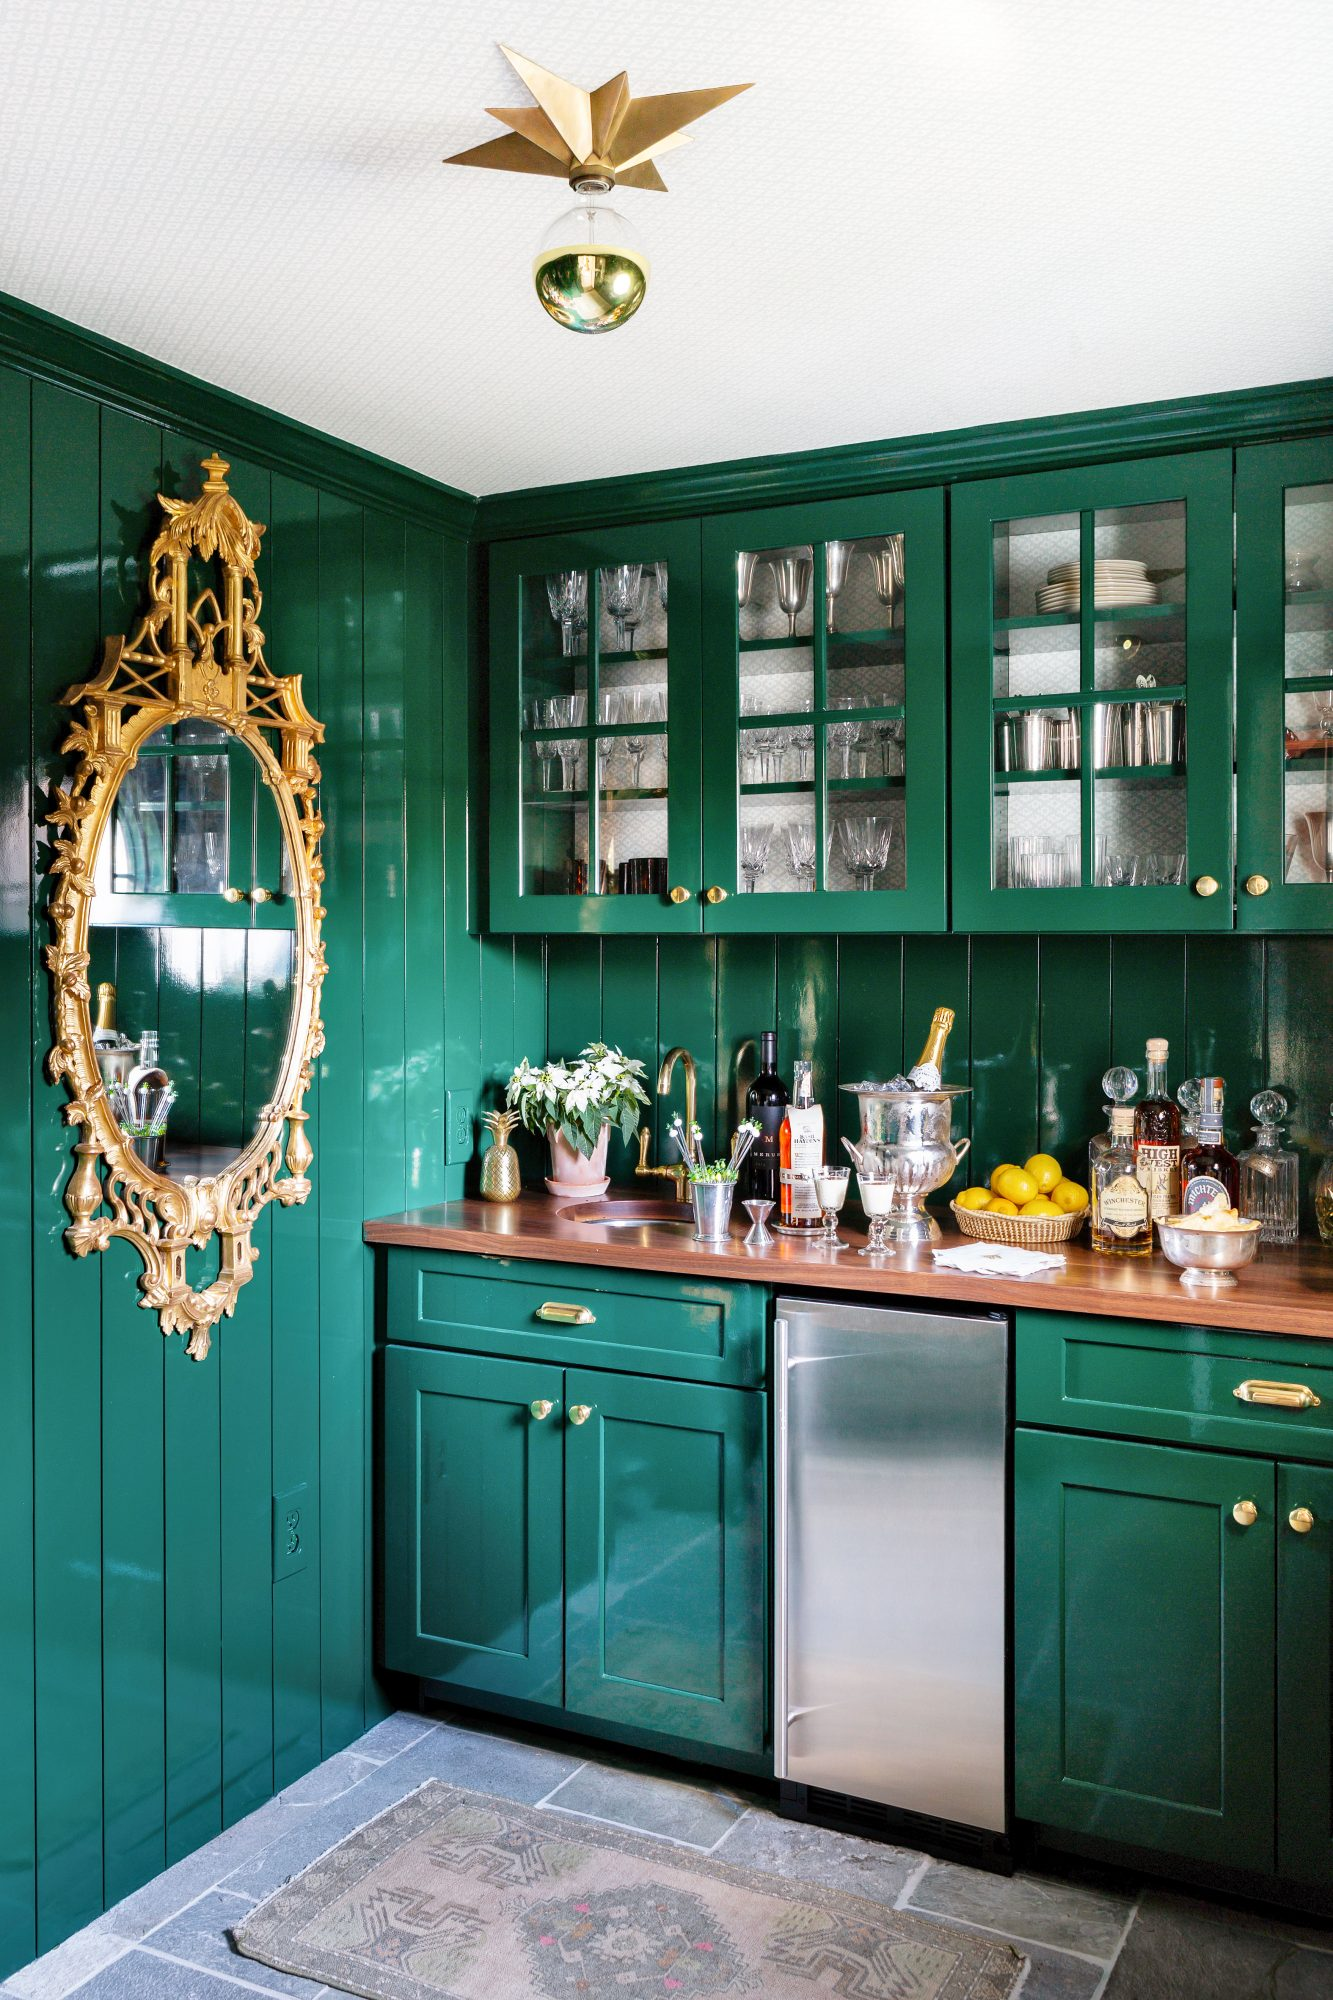 Bar room with green lacquered walls and cabinetry